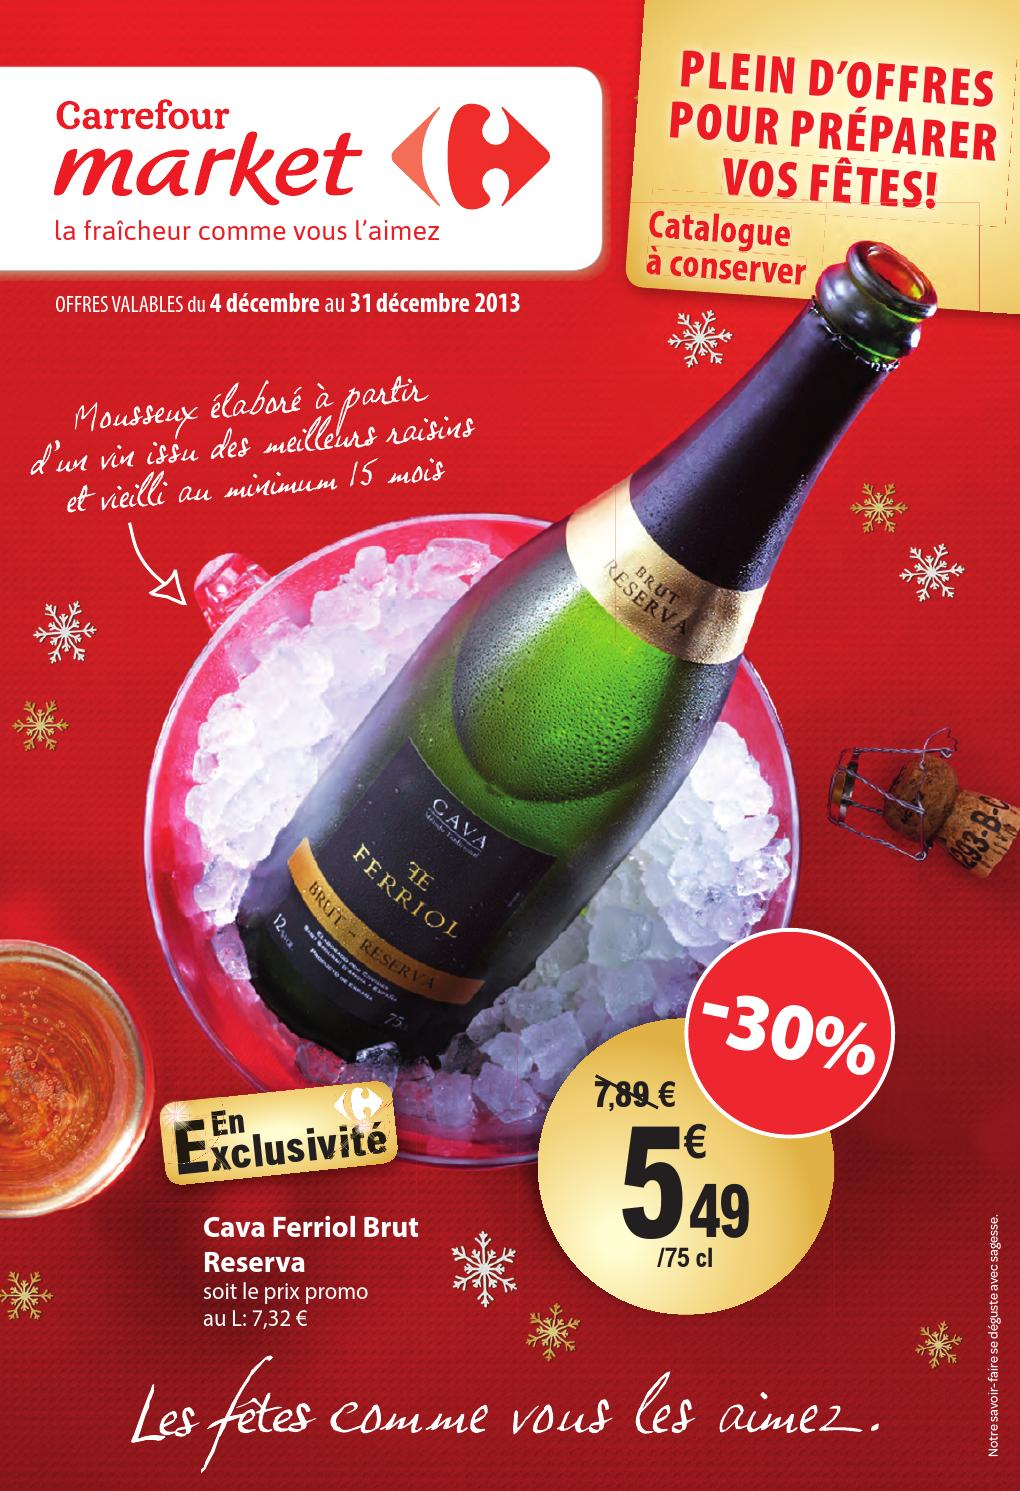 Carrefour belgium coupons